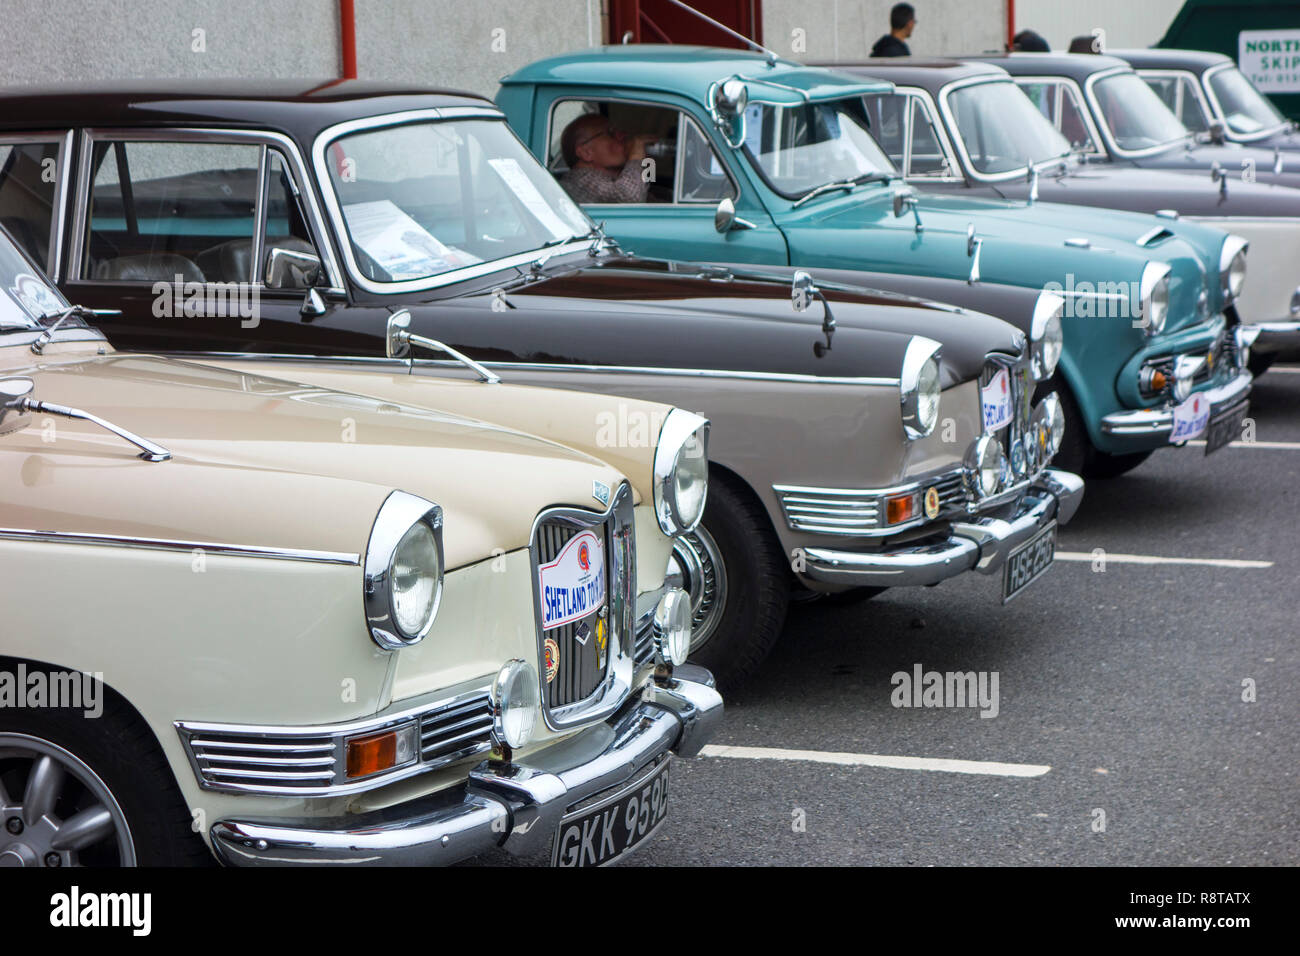 Vintage cars / oldtimers at the Shetland Classic Motor Show in Lerwick, Shetland Islands, UK - Stock Image